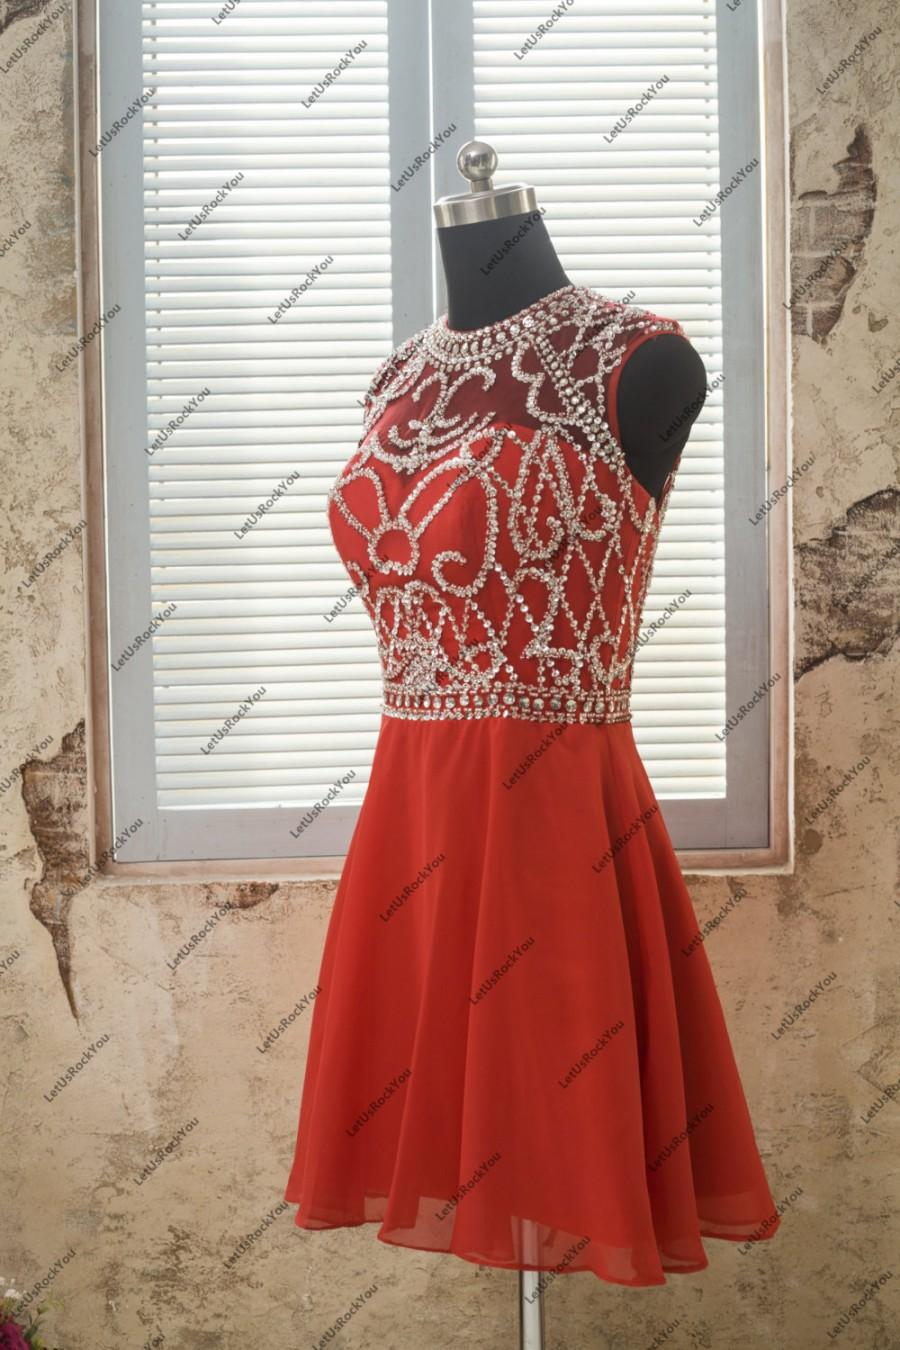 Mariage - Red Sequins Beaded O Neck Short Red Bridesmaid Homecoming Dresses,prom dresses,prom dress,bridesmaid dresses,bridesmaid dress,evening dress